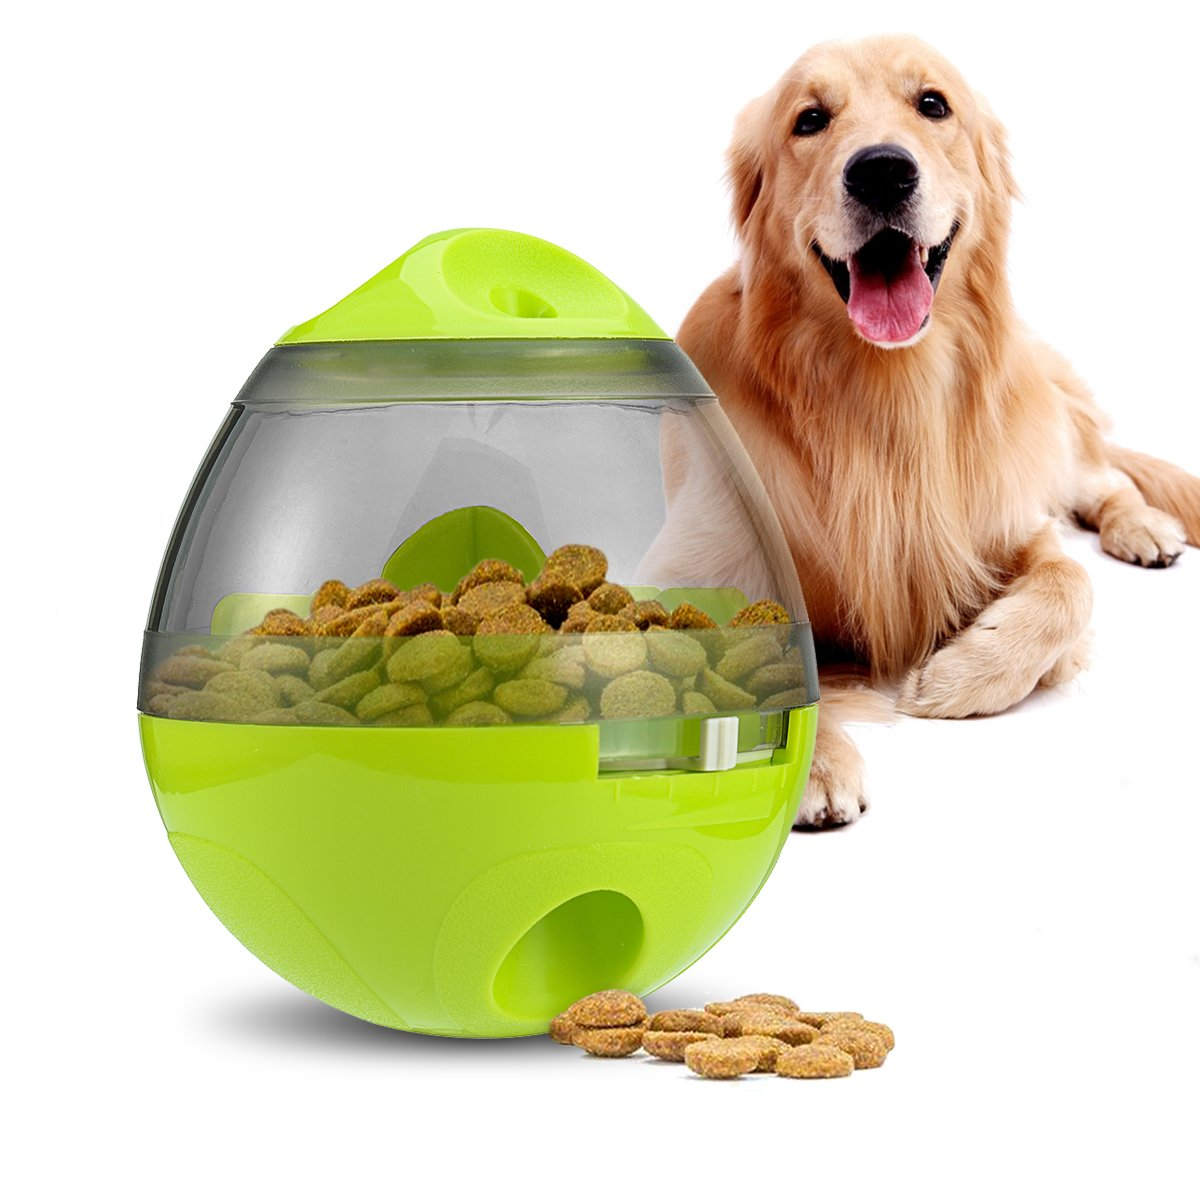 Dog Treat Ball, Dog Treat Dispenser Ball Interactive Dog Food Ball Increases IQ Treat Ball for Dogs & Cat - IQ Dog Toy Weiye